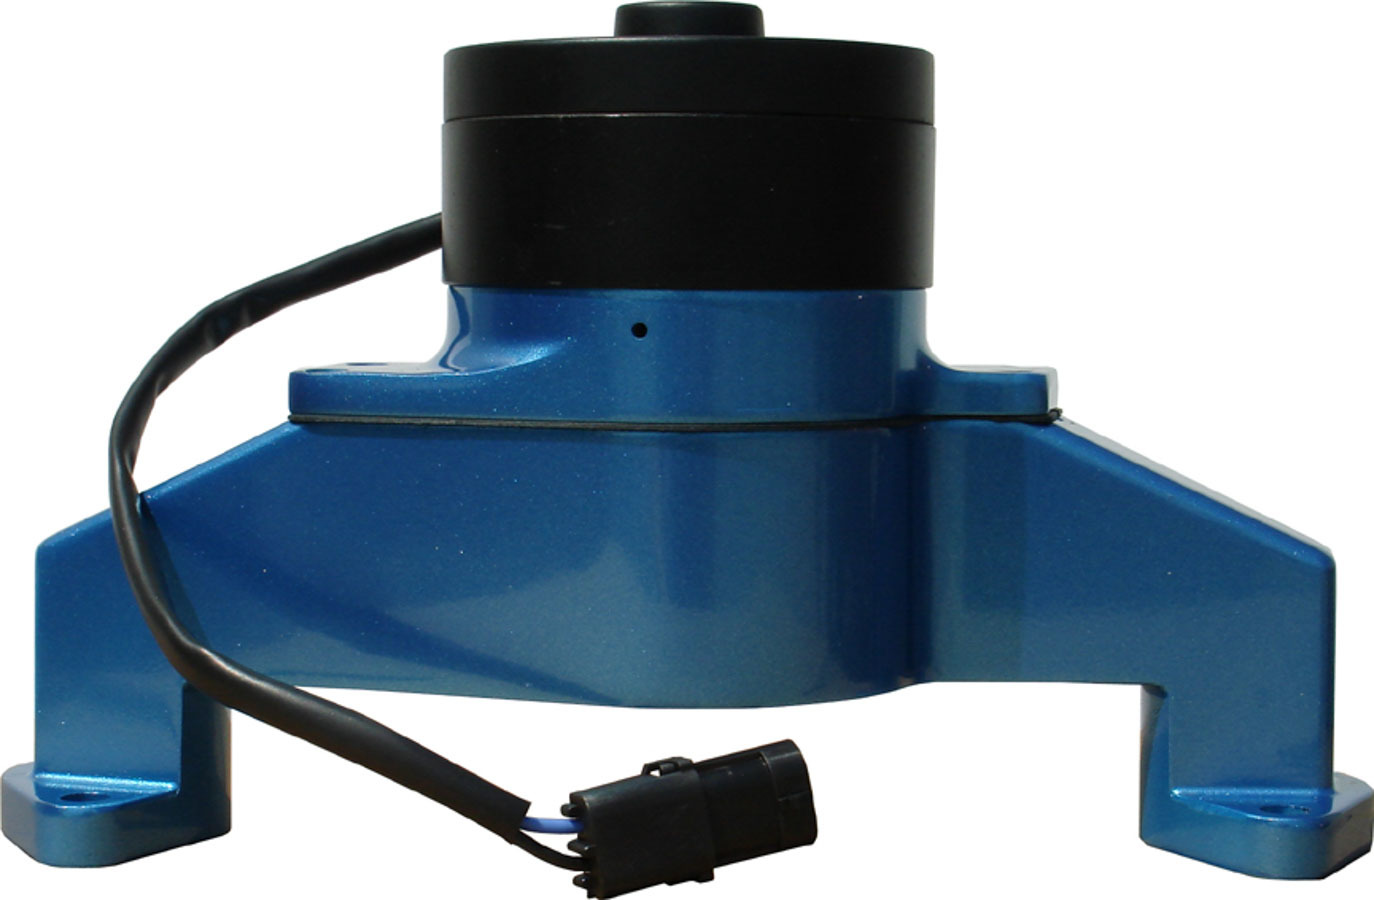 Proform 68230B Water Pump, Electric, 1 in NPT Female Inlet, Adapter / Gaskets / Hardware, 6.000 in Height, Billet Aluminum, Blue Powder Coat, Big Block Chevy, Kit